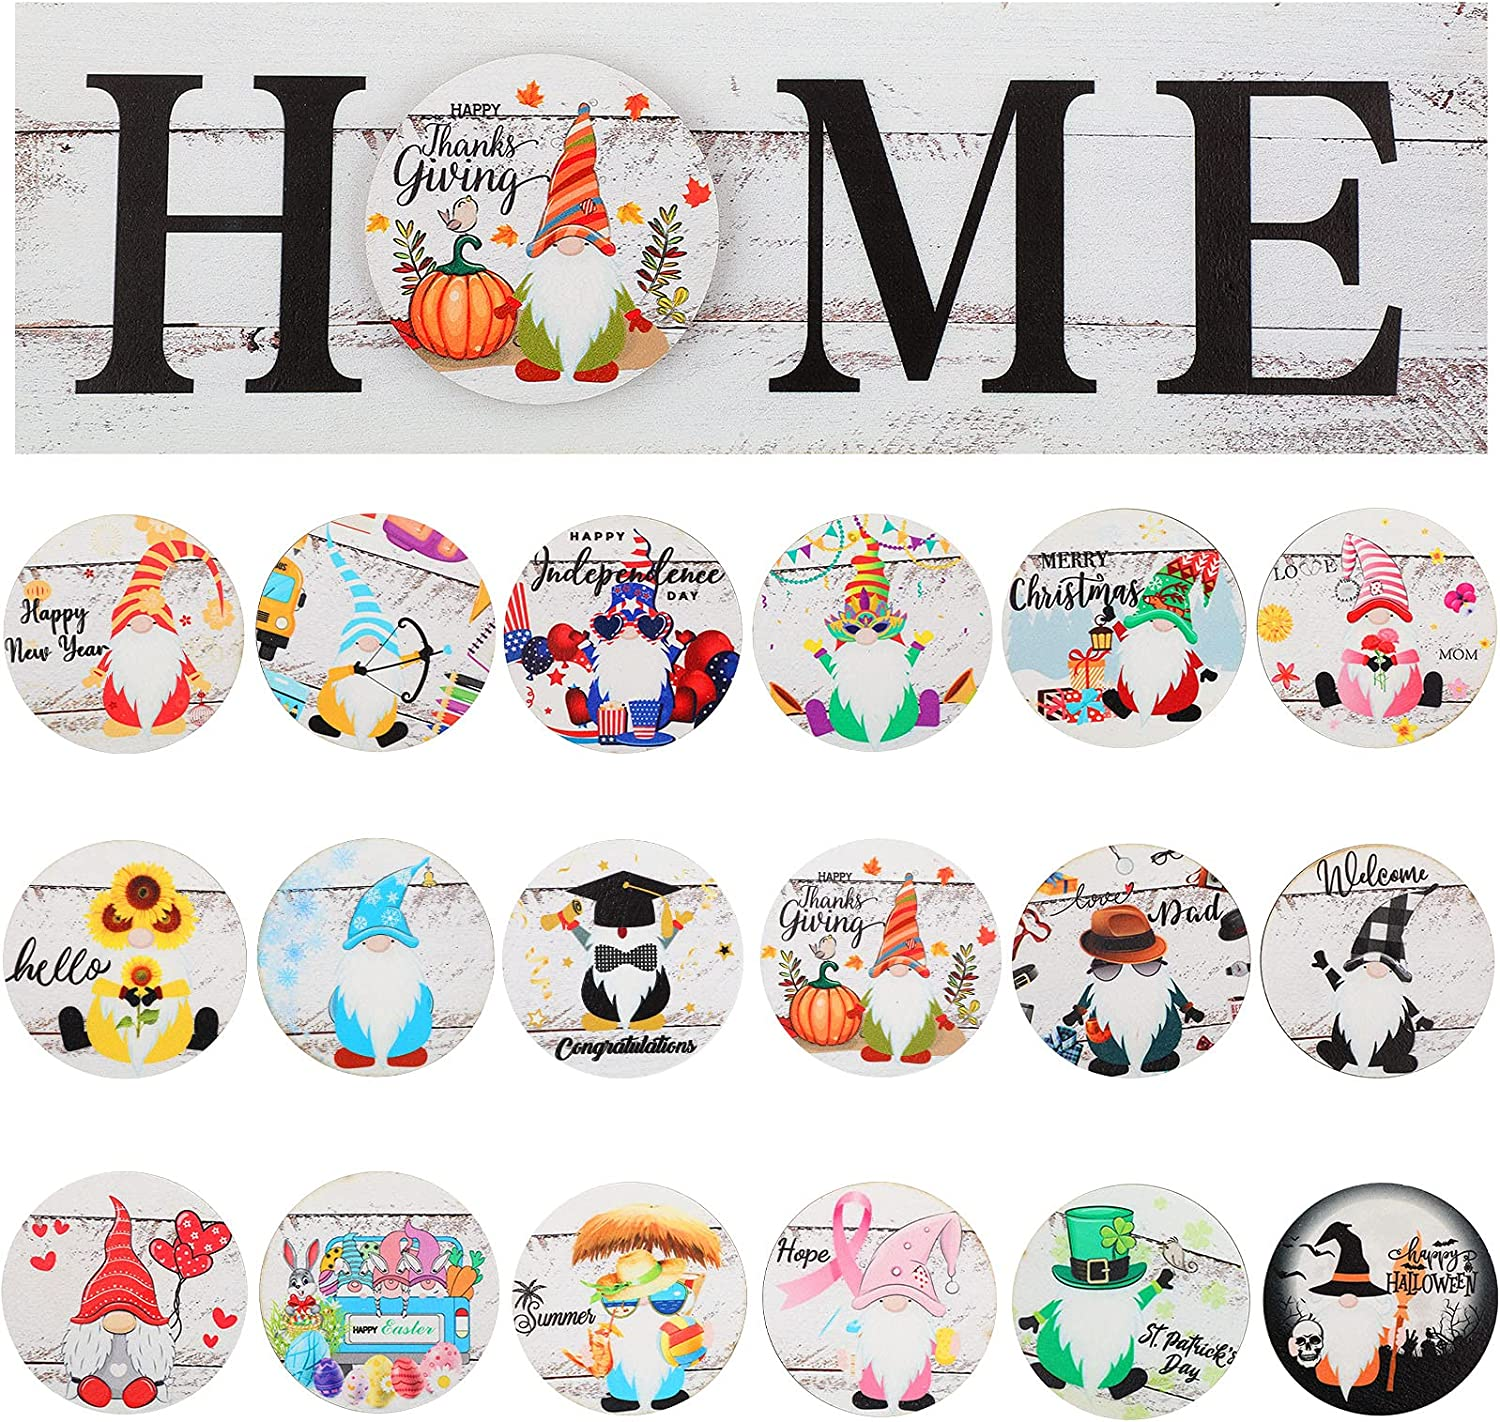 Home Sign Rustic Wood Home Decor with 18 Interchangeable Round Holiday Sign Wooden Door Hanger Front Door Porch Hanging Ornament Wall Decor for Easter, Christmas, Thanksgiving, Halloween, 4th of July